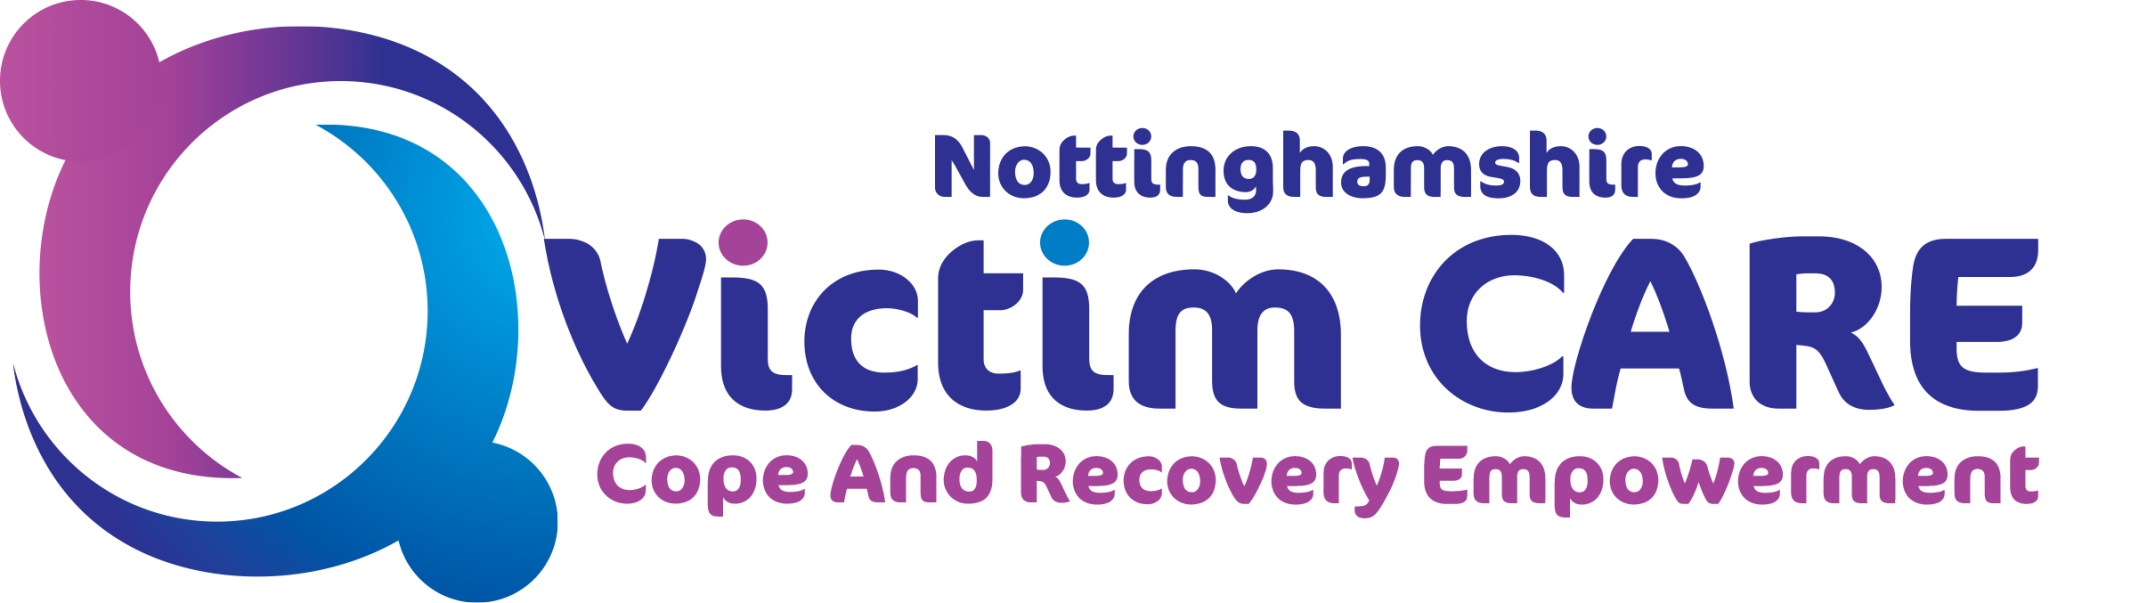 Nottinghamshire Victim Care logo